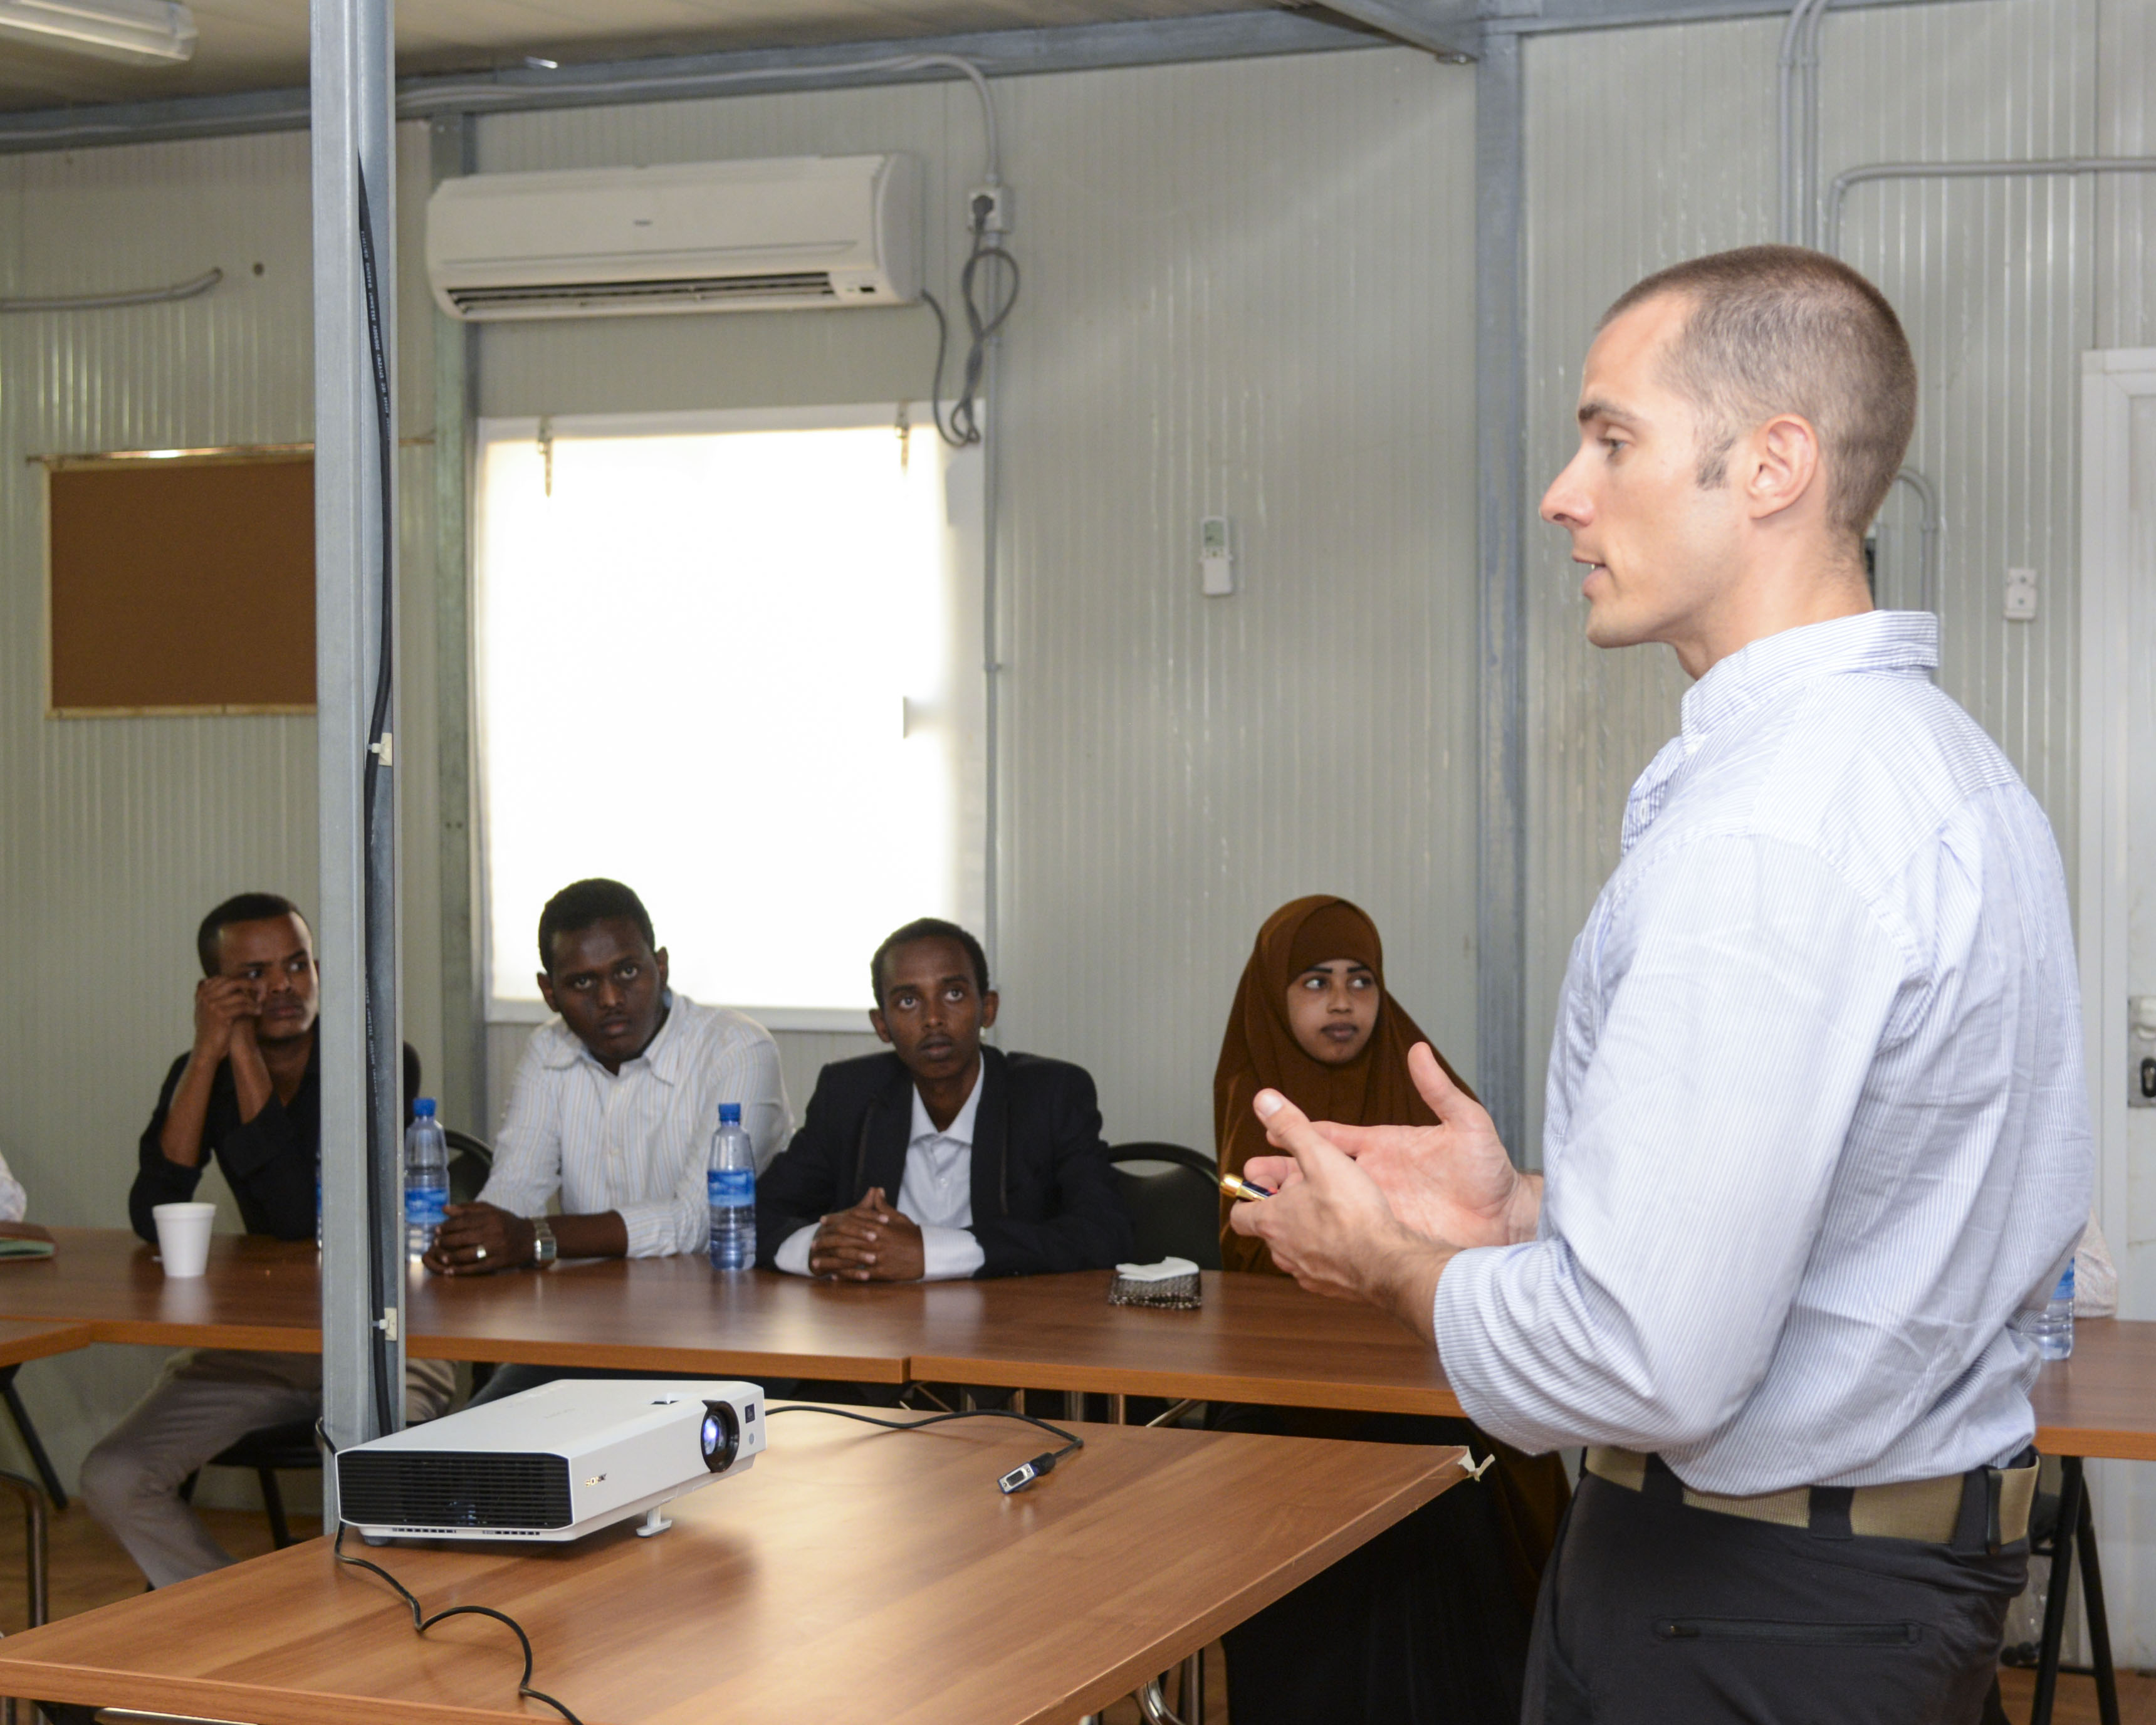 U.S. Army Maj. Andrew Mosier, 403rd Civil Affairs Battalion physician, instructs Somali doctors during the Continuing Medical Education Conference in Mogadishu, Somalia, Sept. 14, 2016. The conference brought nearly 20 medical students and general practitioners from various sectors of Somalia together to receive training on various medical practices, specifically in the fields of radiology and pediatrics. (U.S. Air Force photo by Staff Sgt. Benjamin Raughton)